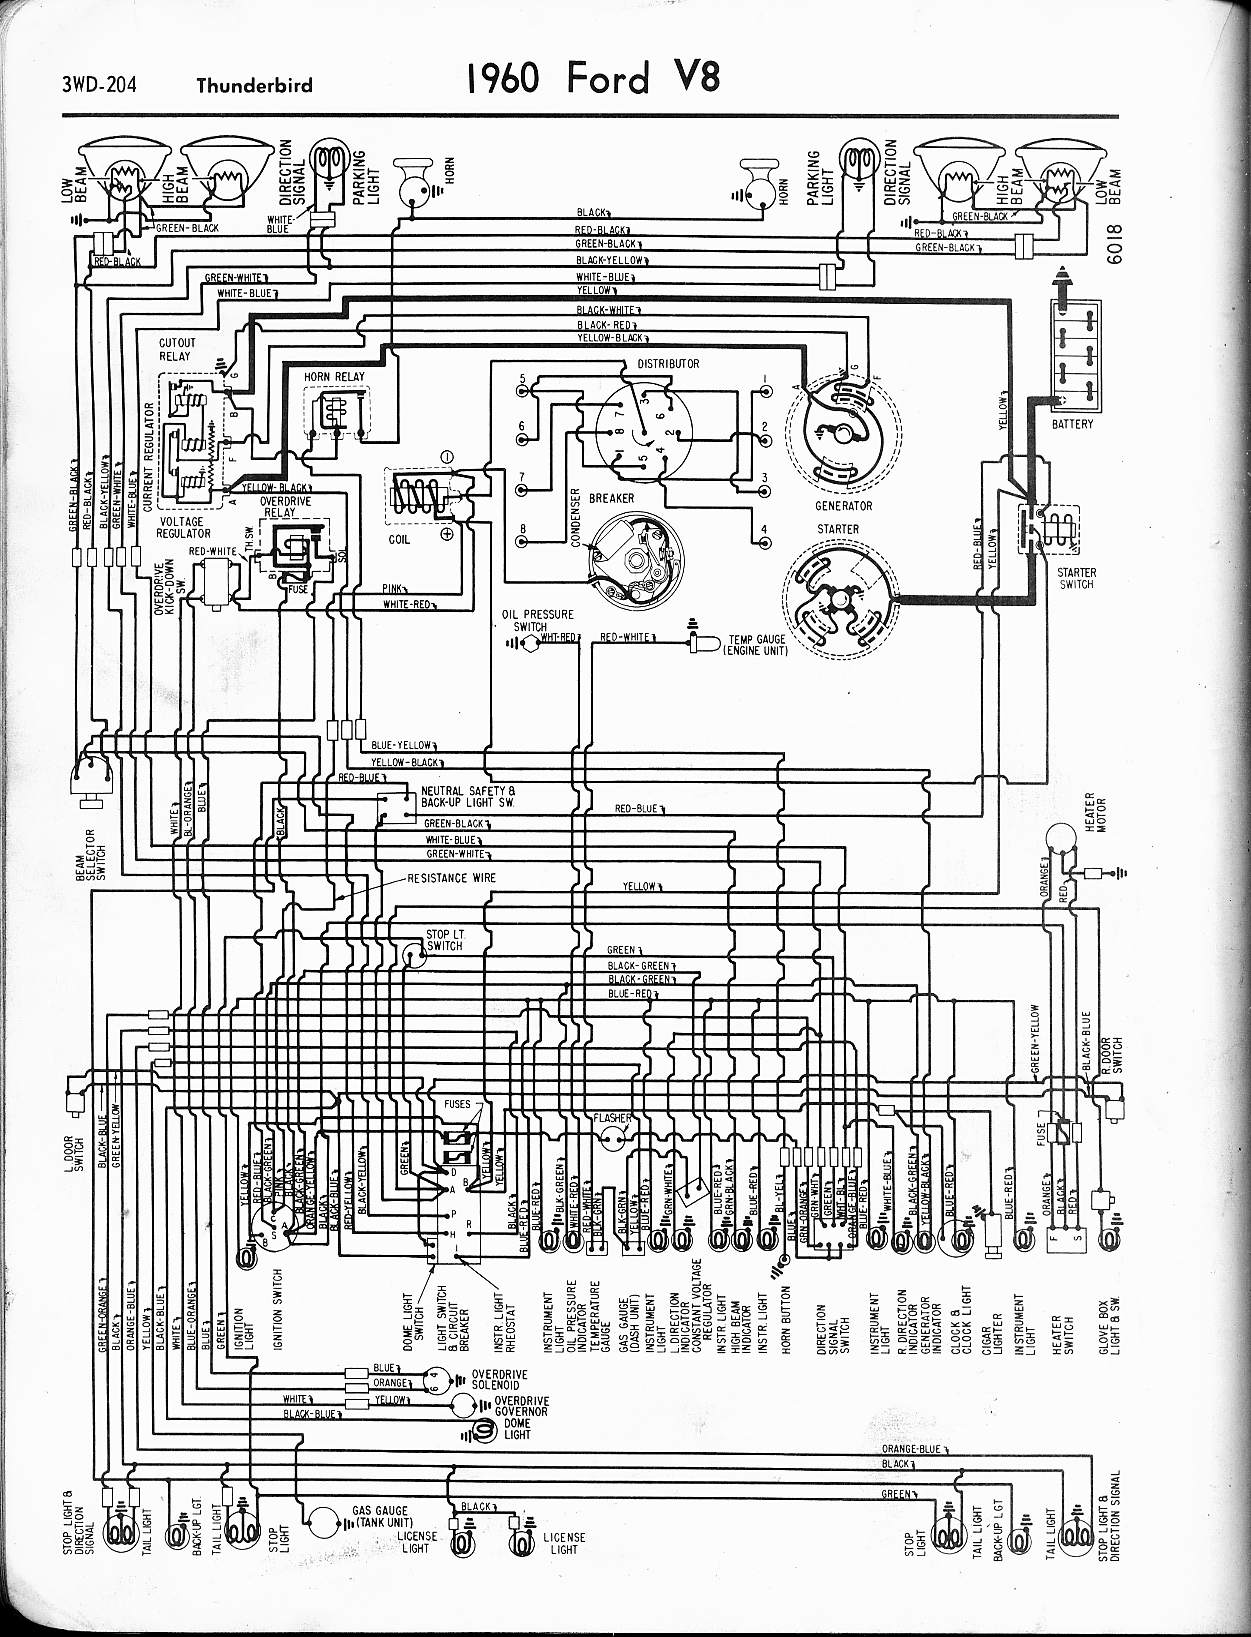 [DIAGRAM_1JK]  Wiring Diagram For 1966 Ford F600 Truck | Wiring Library | 1966 Falcon Wiring Diagrams |  | Wiring Library